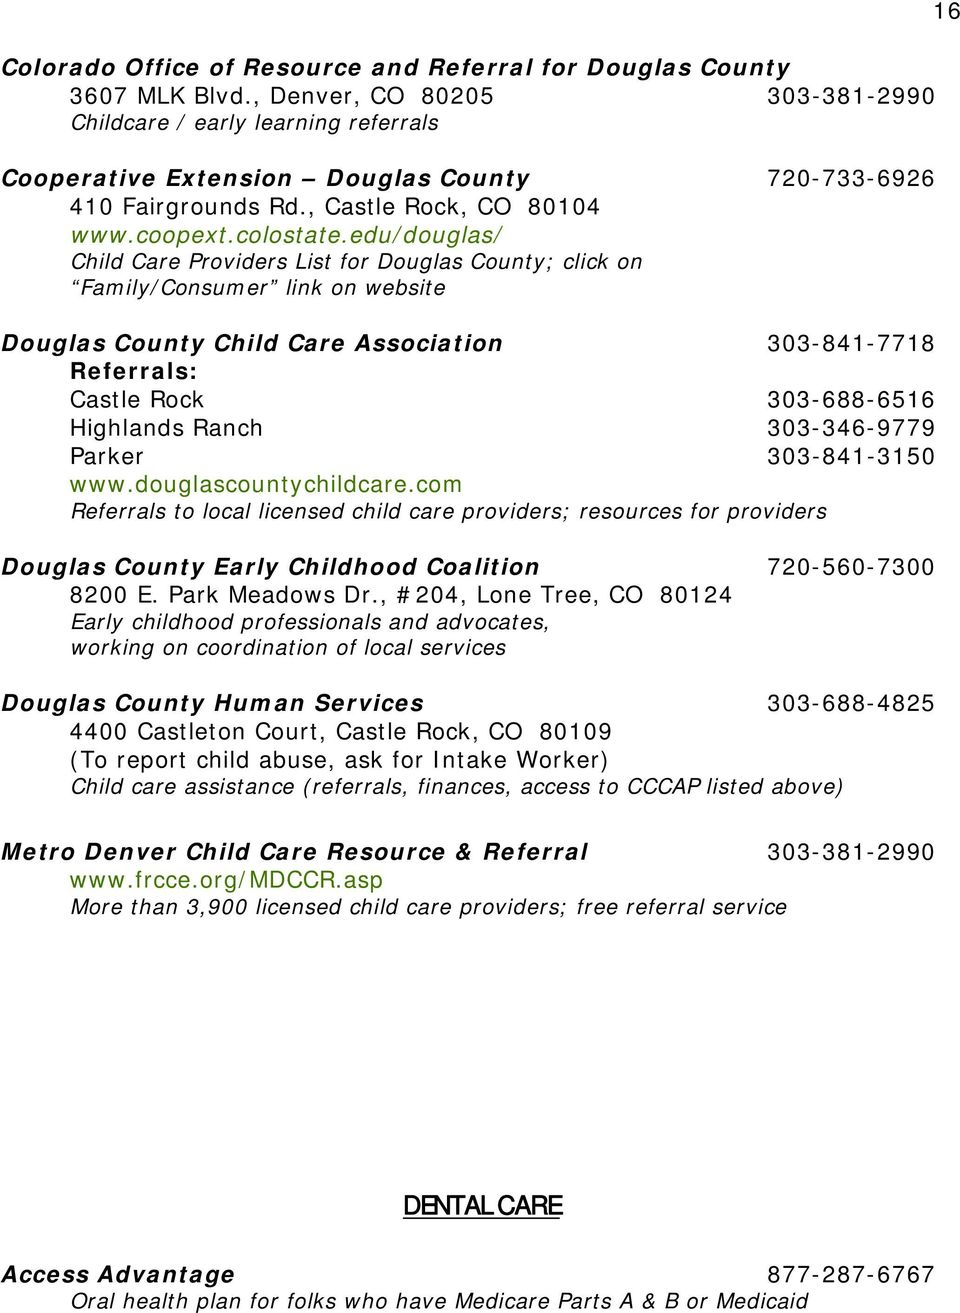 edu/douglas/ Child Care Providers List for Douglas County; click on Family/Consumer link on website Douglas County Child Care Association 303-841-7718 Referrals: Castle Rock 303-688-6516 Highlands